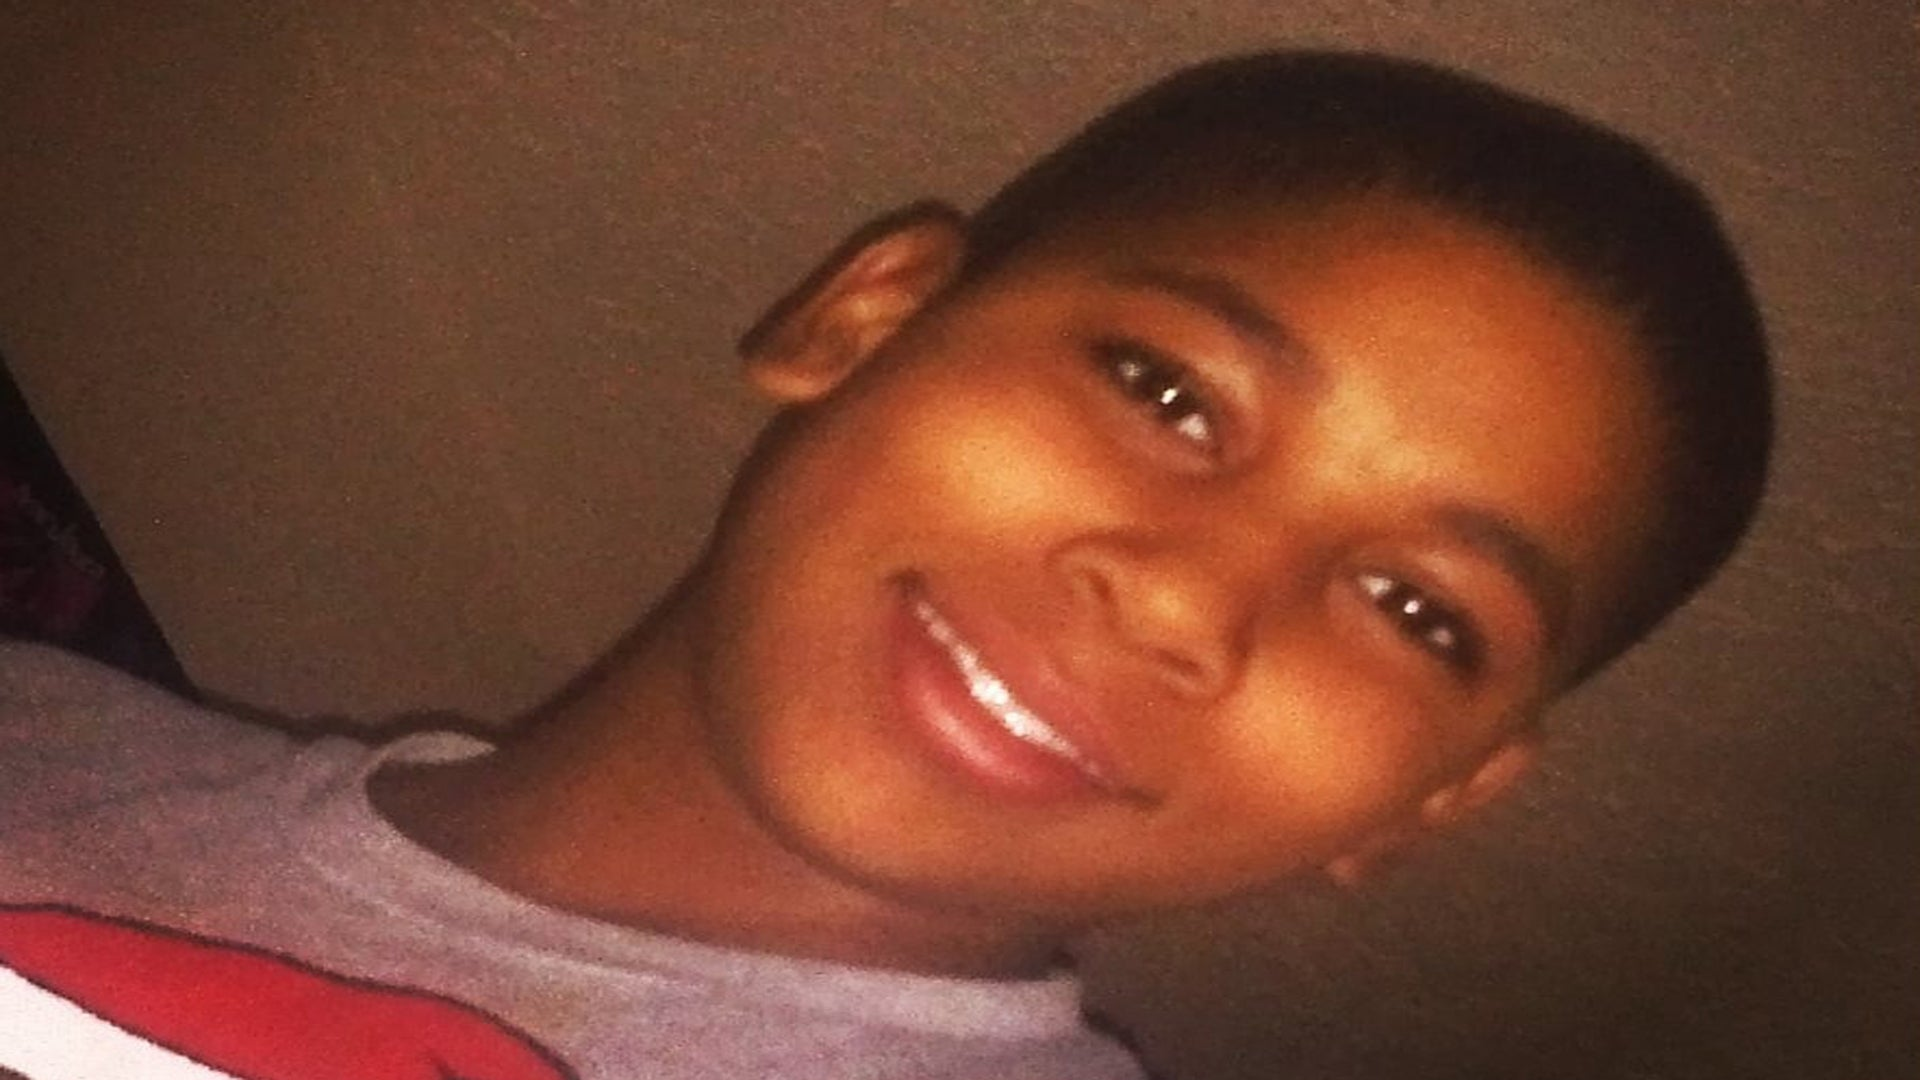 One Year After Shooting Death Of Tamir Rice, Family Still Demands Justice